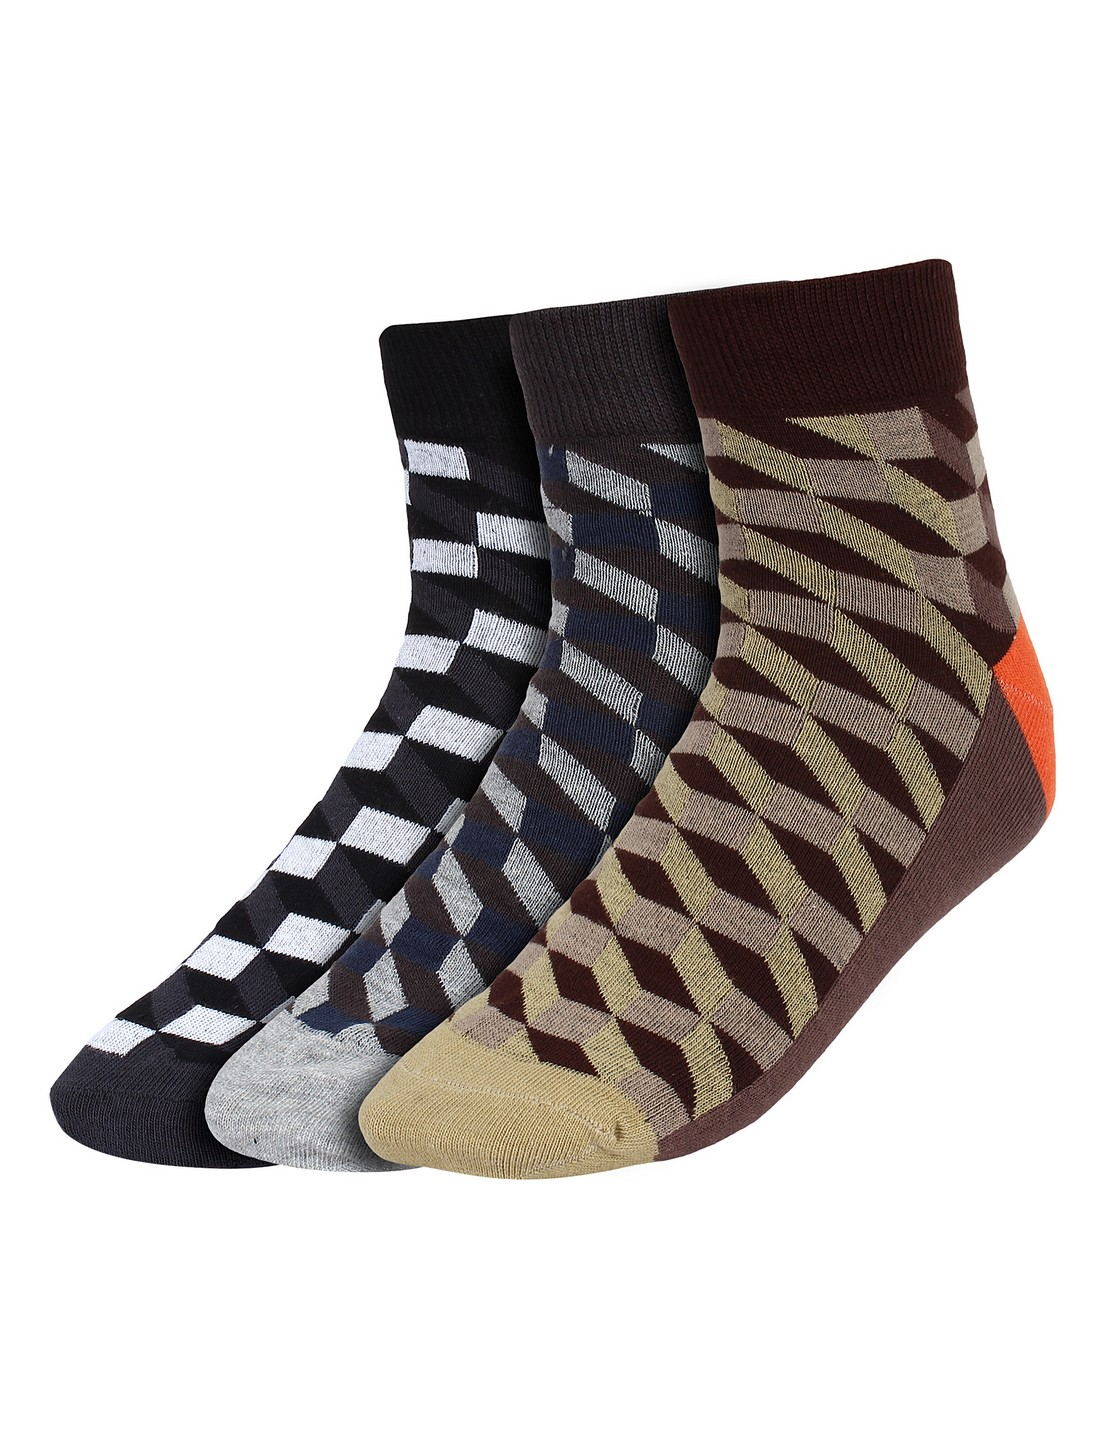 CREATURE | CREATURE Check Print Men's Ankle Length Socks Pack of 3